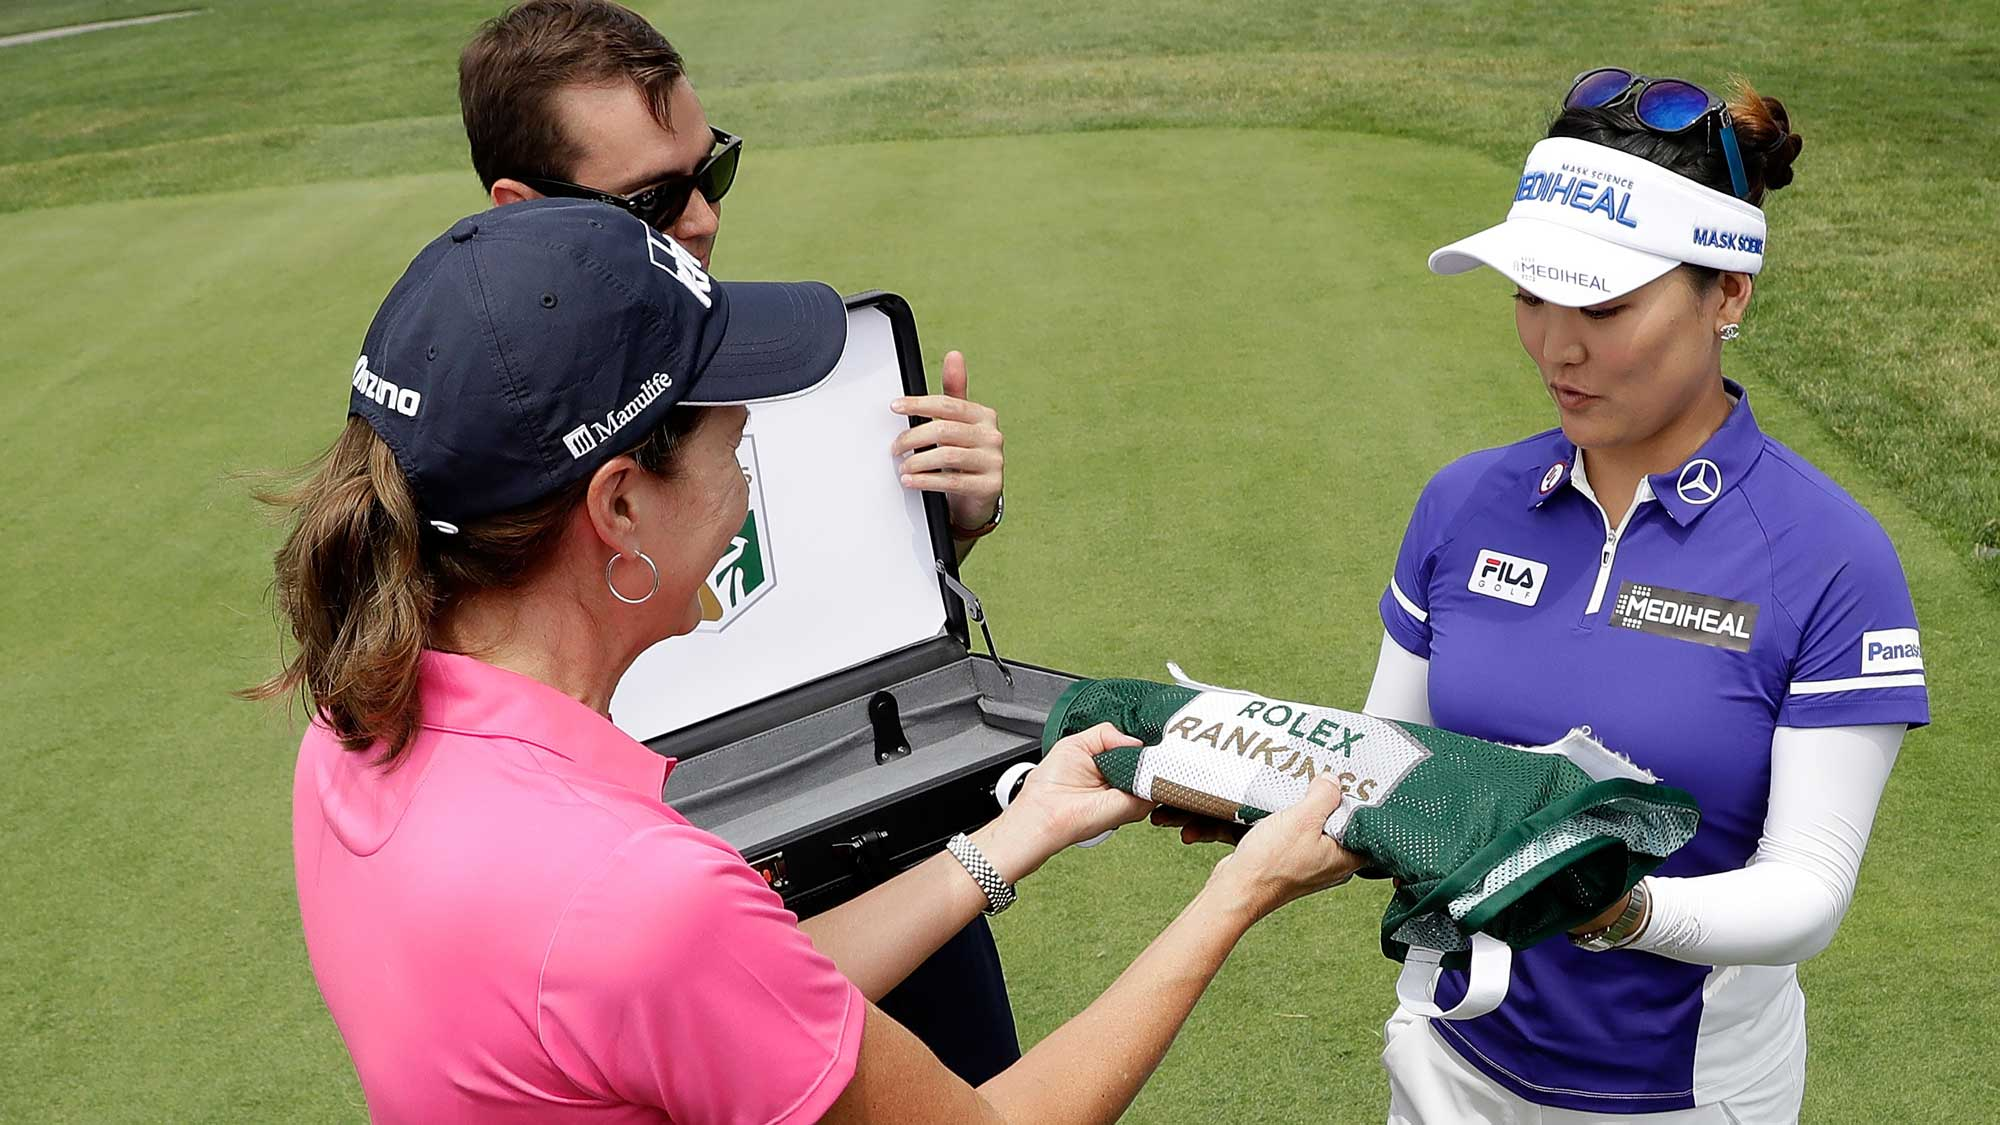 Lynne Doughtie Chairman and CEO of KPMG U.S. presents So Yeon Ryu of South Korea a caddie bib signifying her #1 world ranking during the first round of the 2017 KPMG PGA Championship